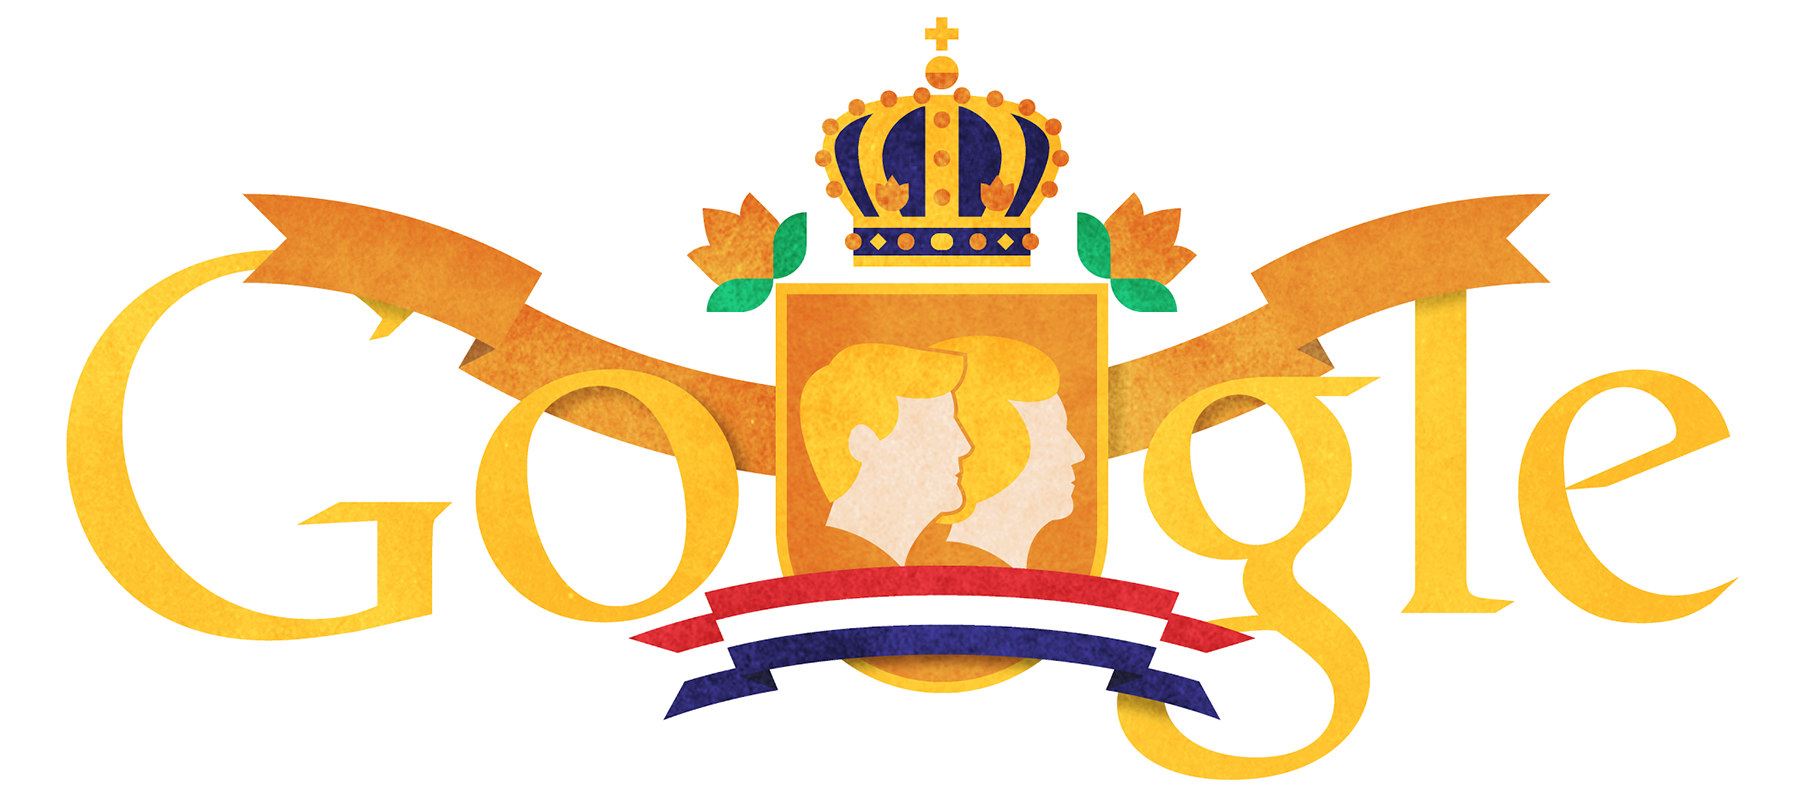 Queens Day 2013 [День королевы] /This doodle was shown 30